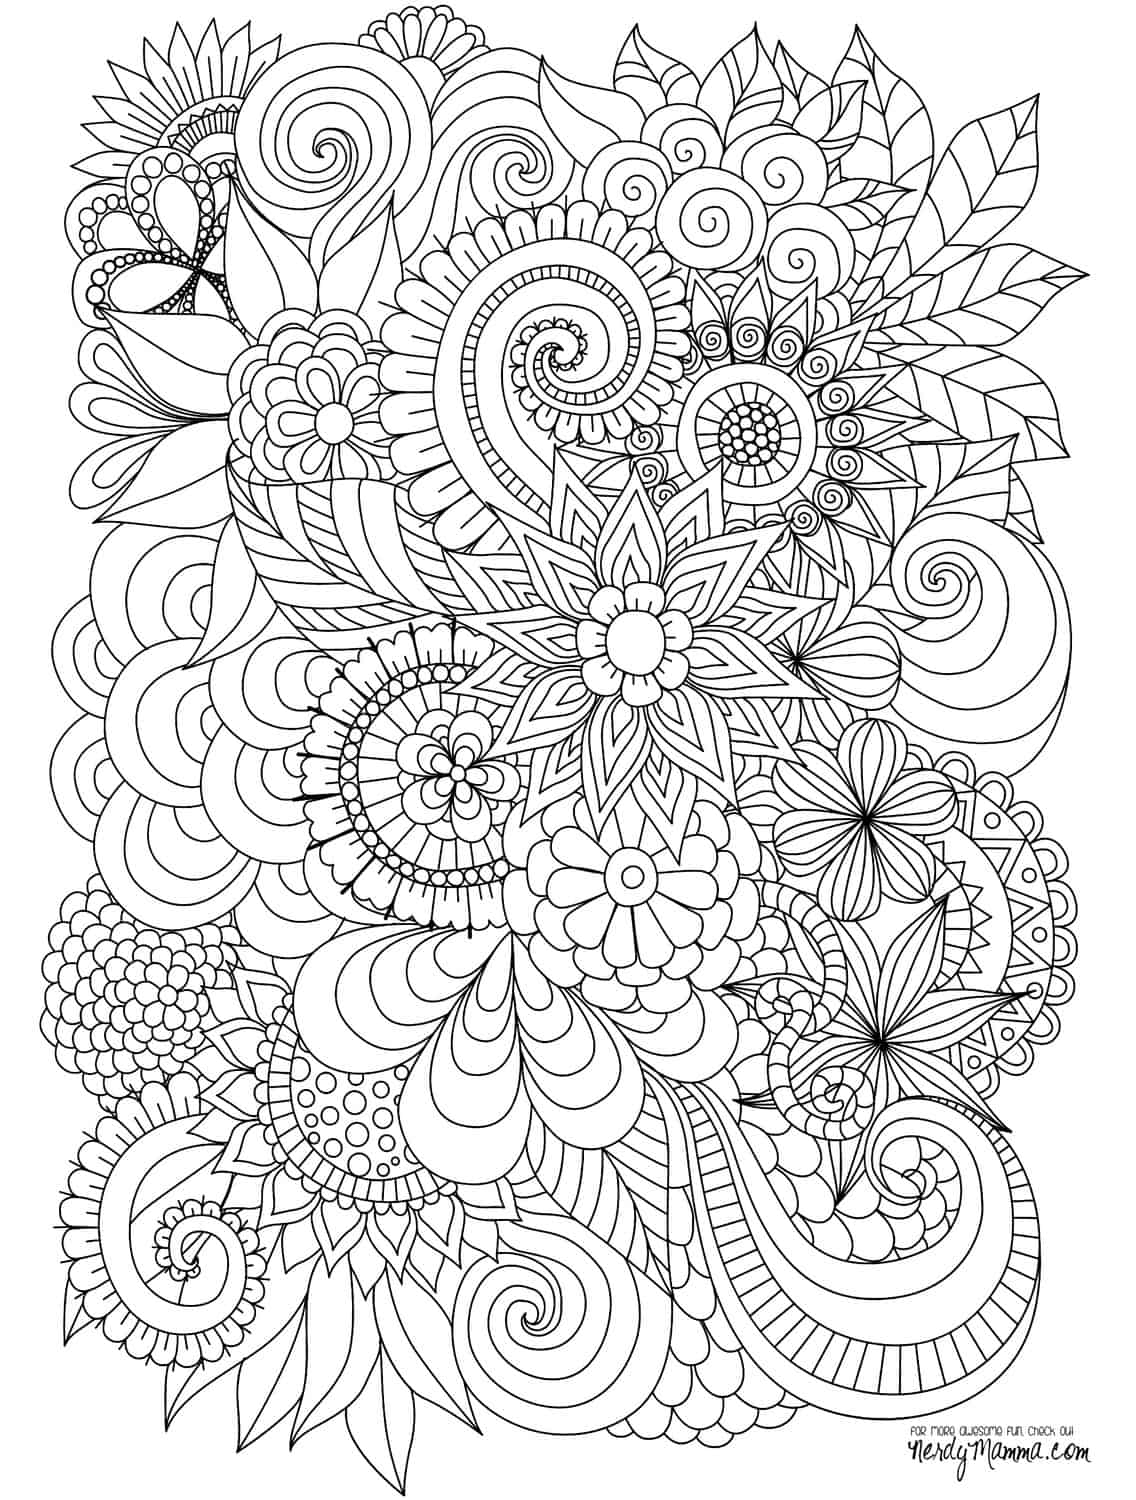 11 free printable adult coloring pages for Adult coloring pages printable